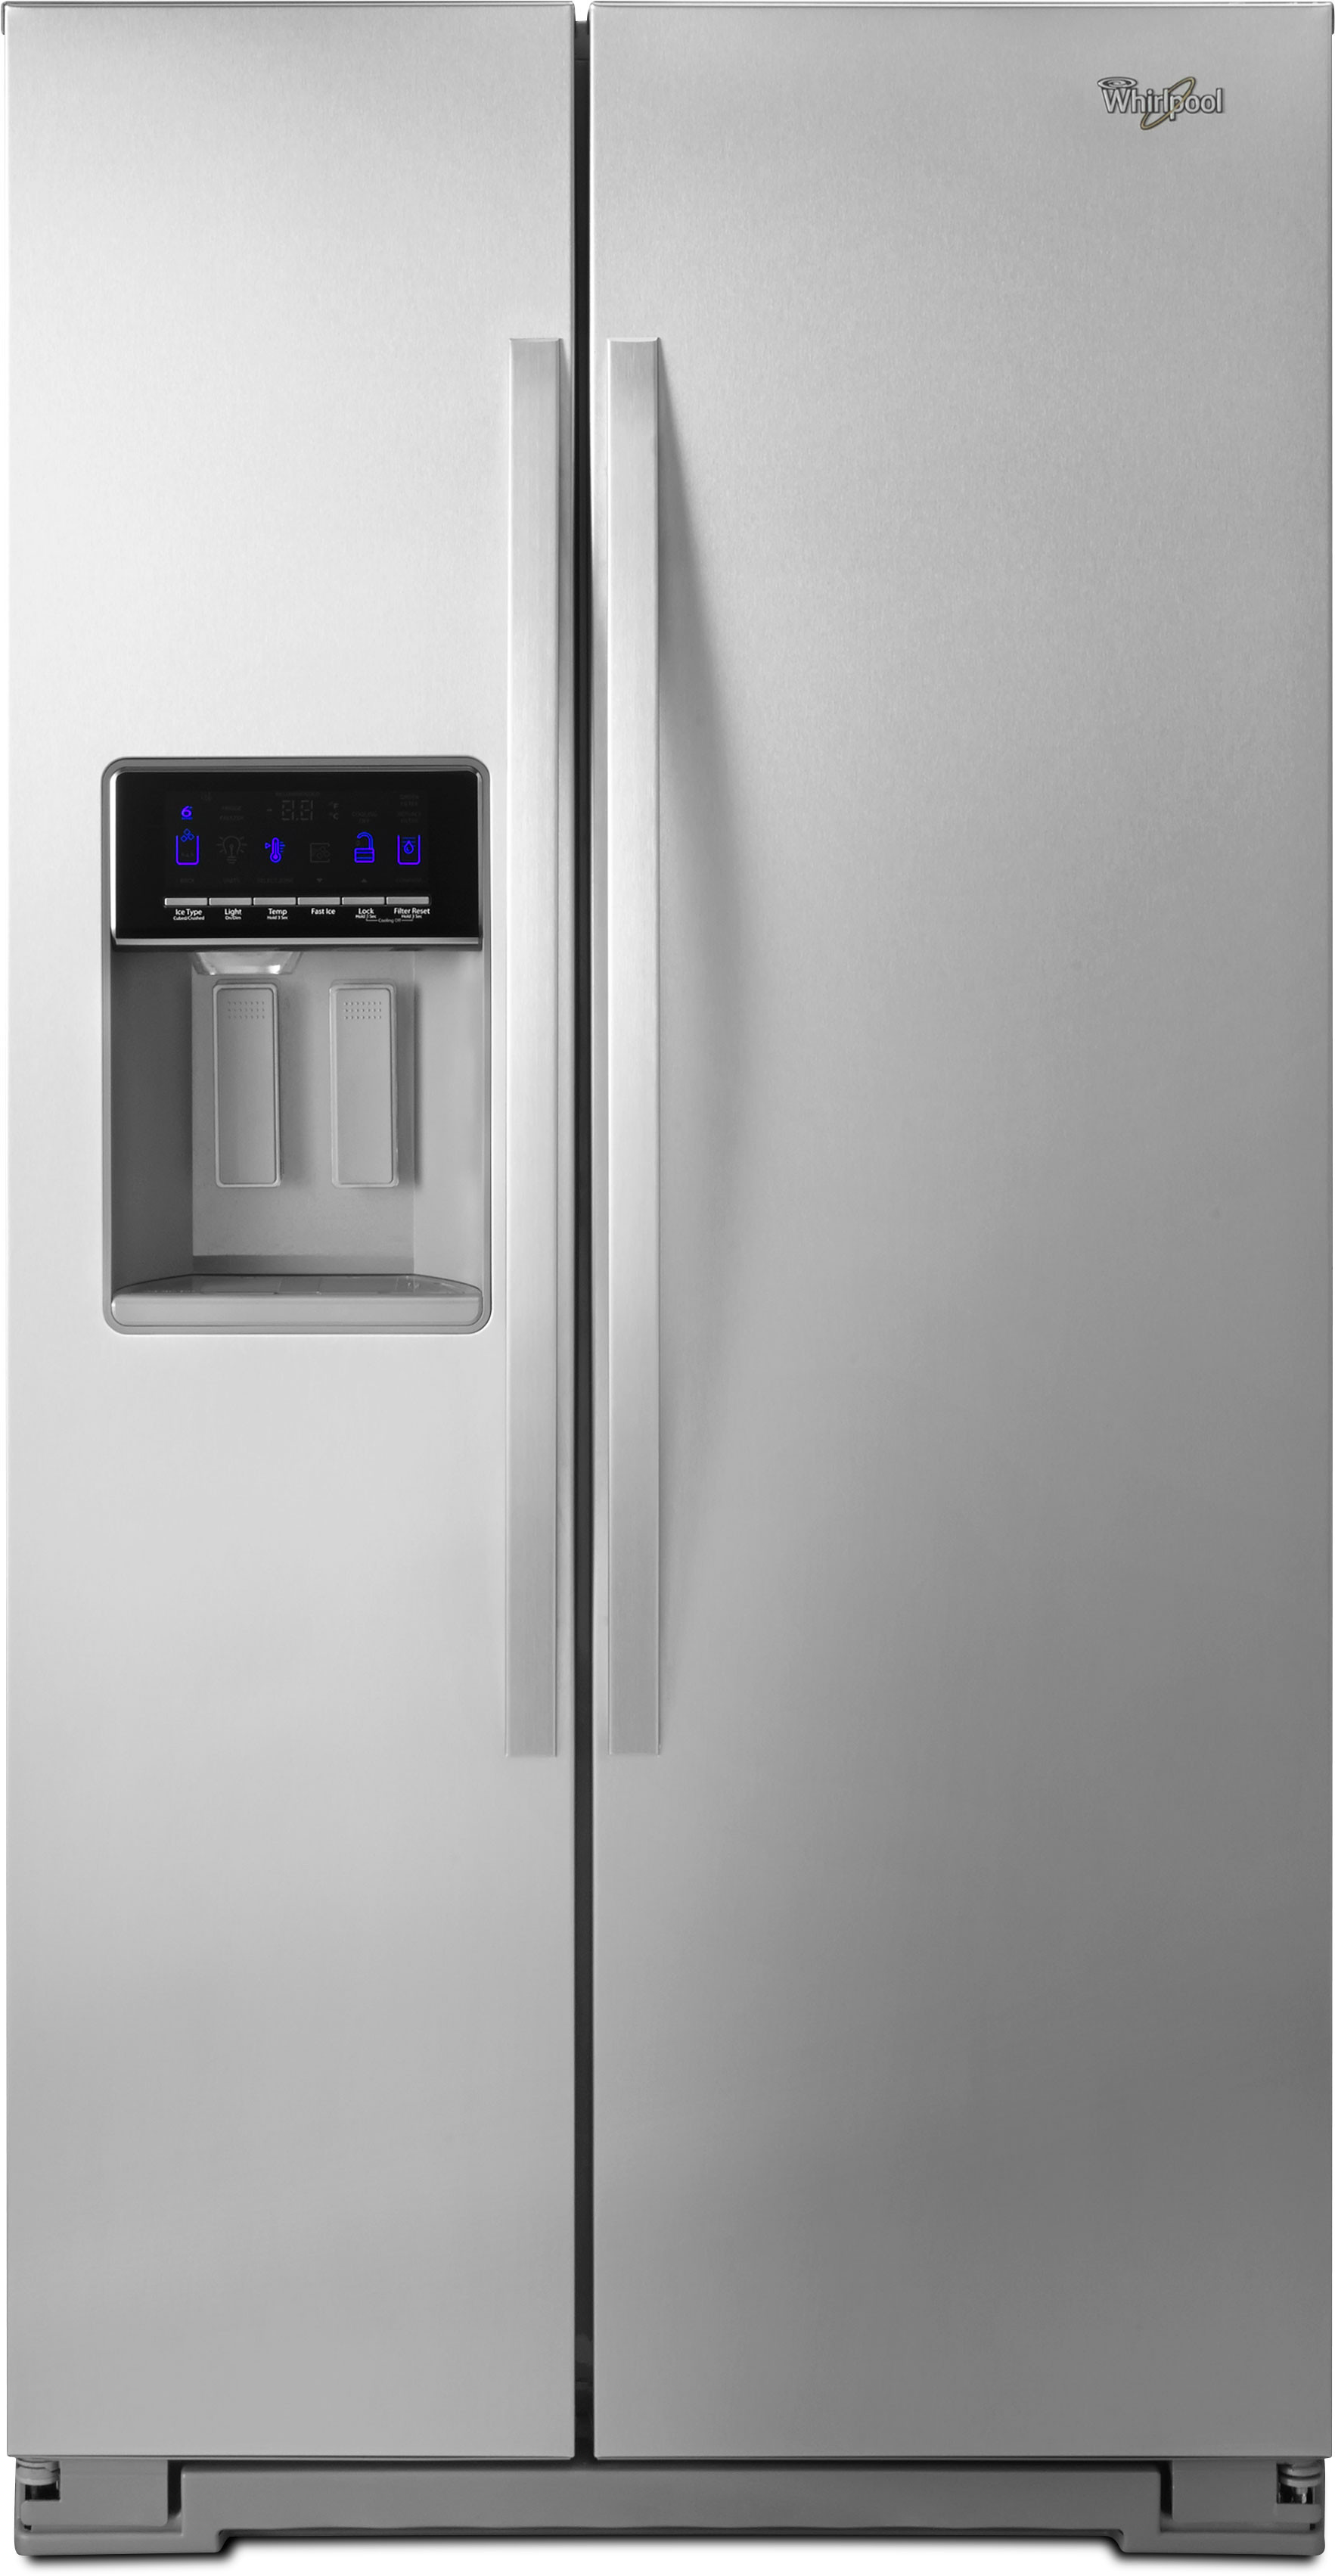 Ge 30 inch side by side white refrigerator - Ge 30 Inch Side By Side White Refrigerator 38